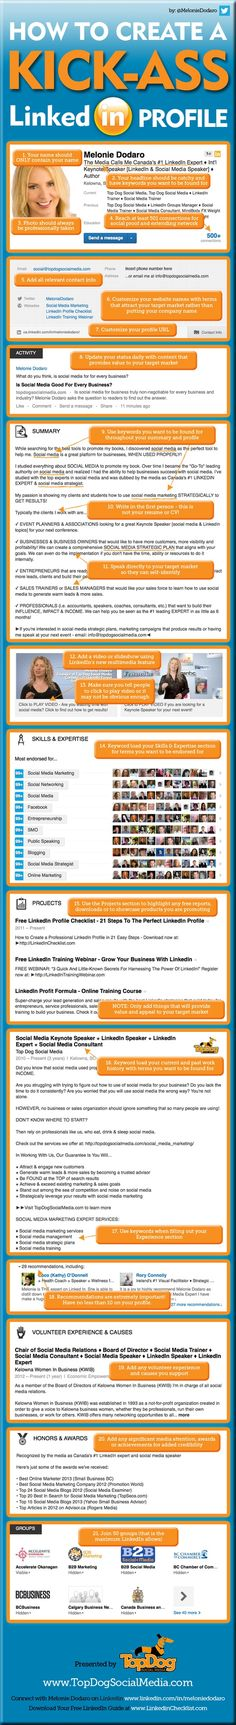 84 best Infographics About Job Search  Recruiting images on - linkedin resumes search